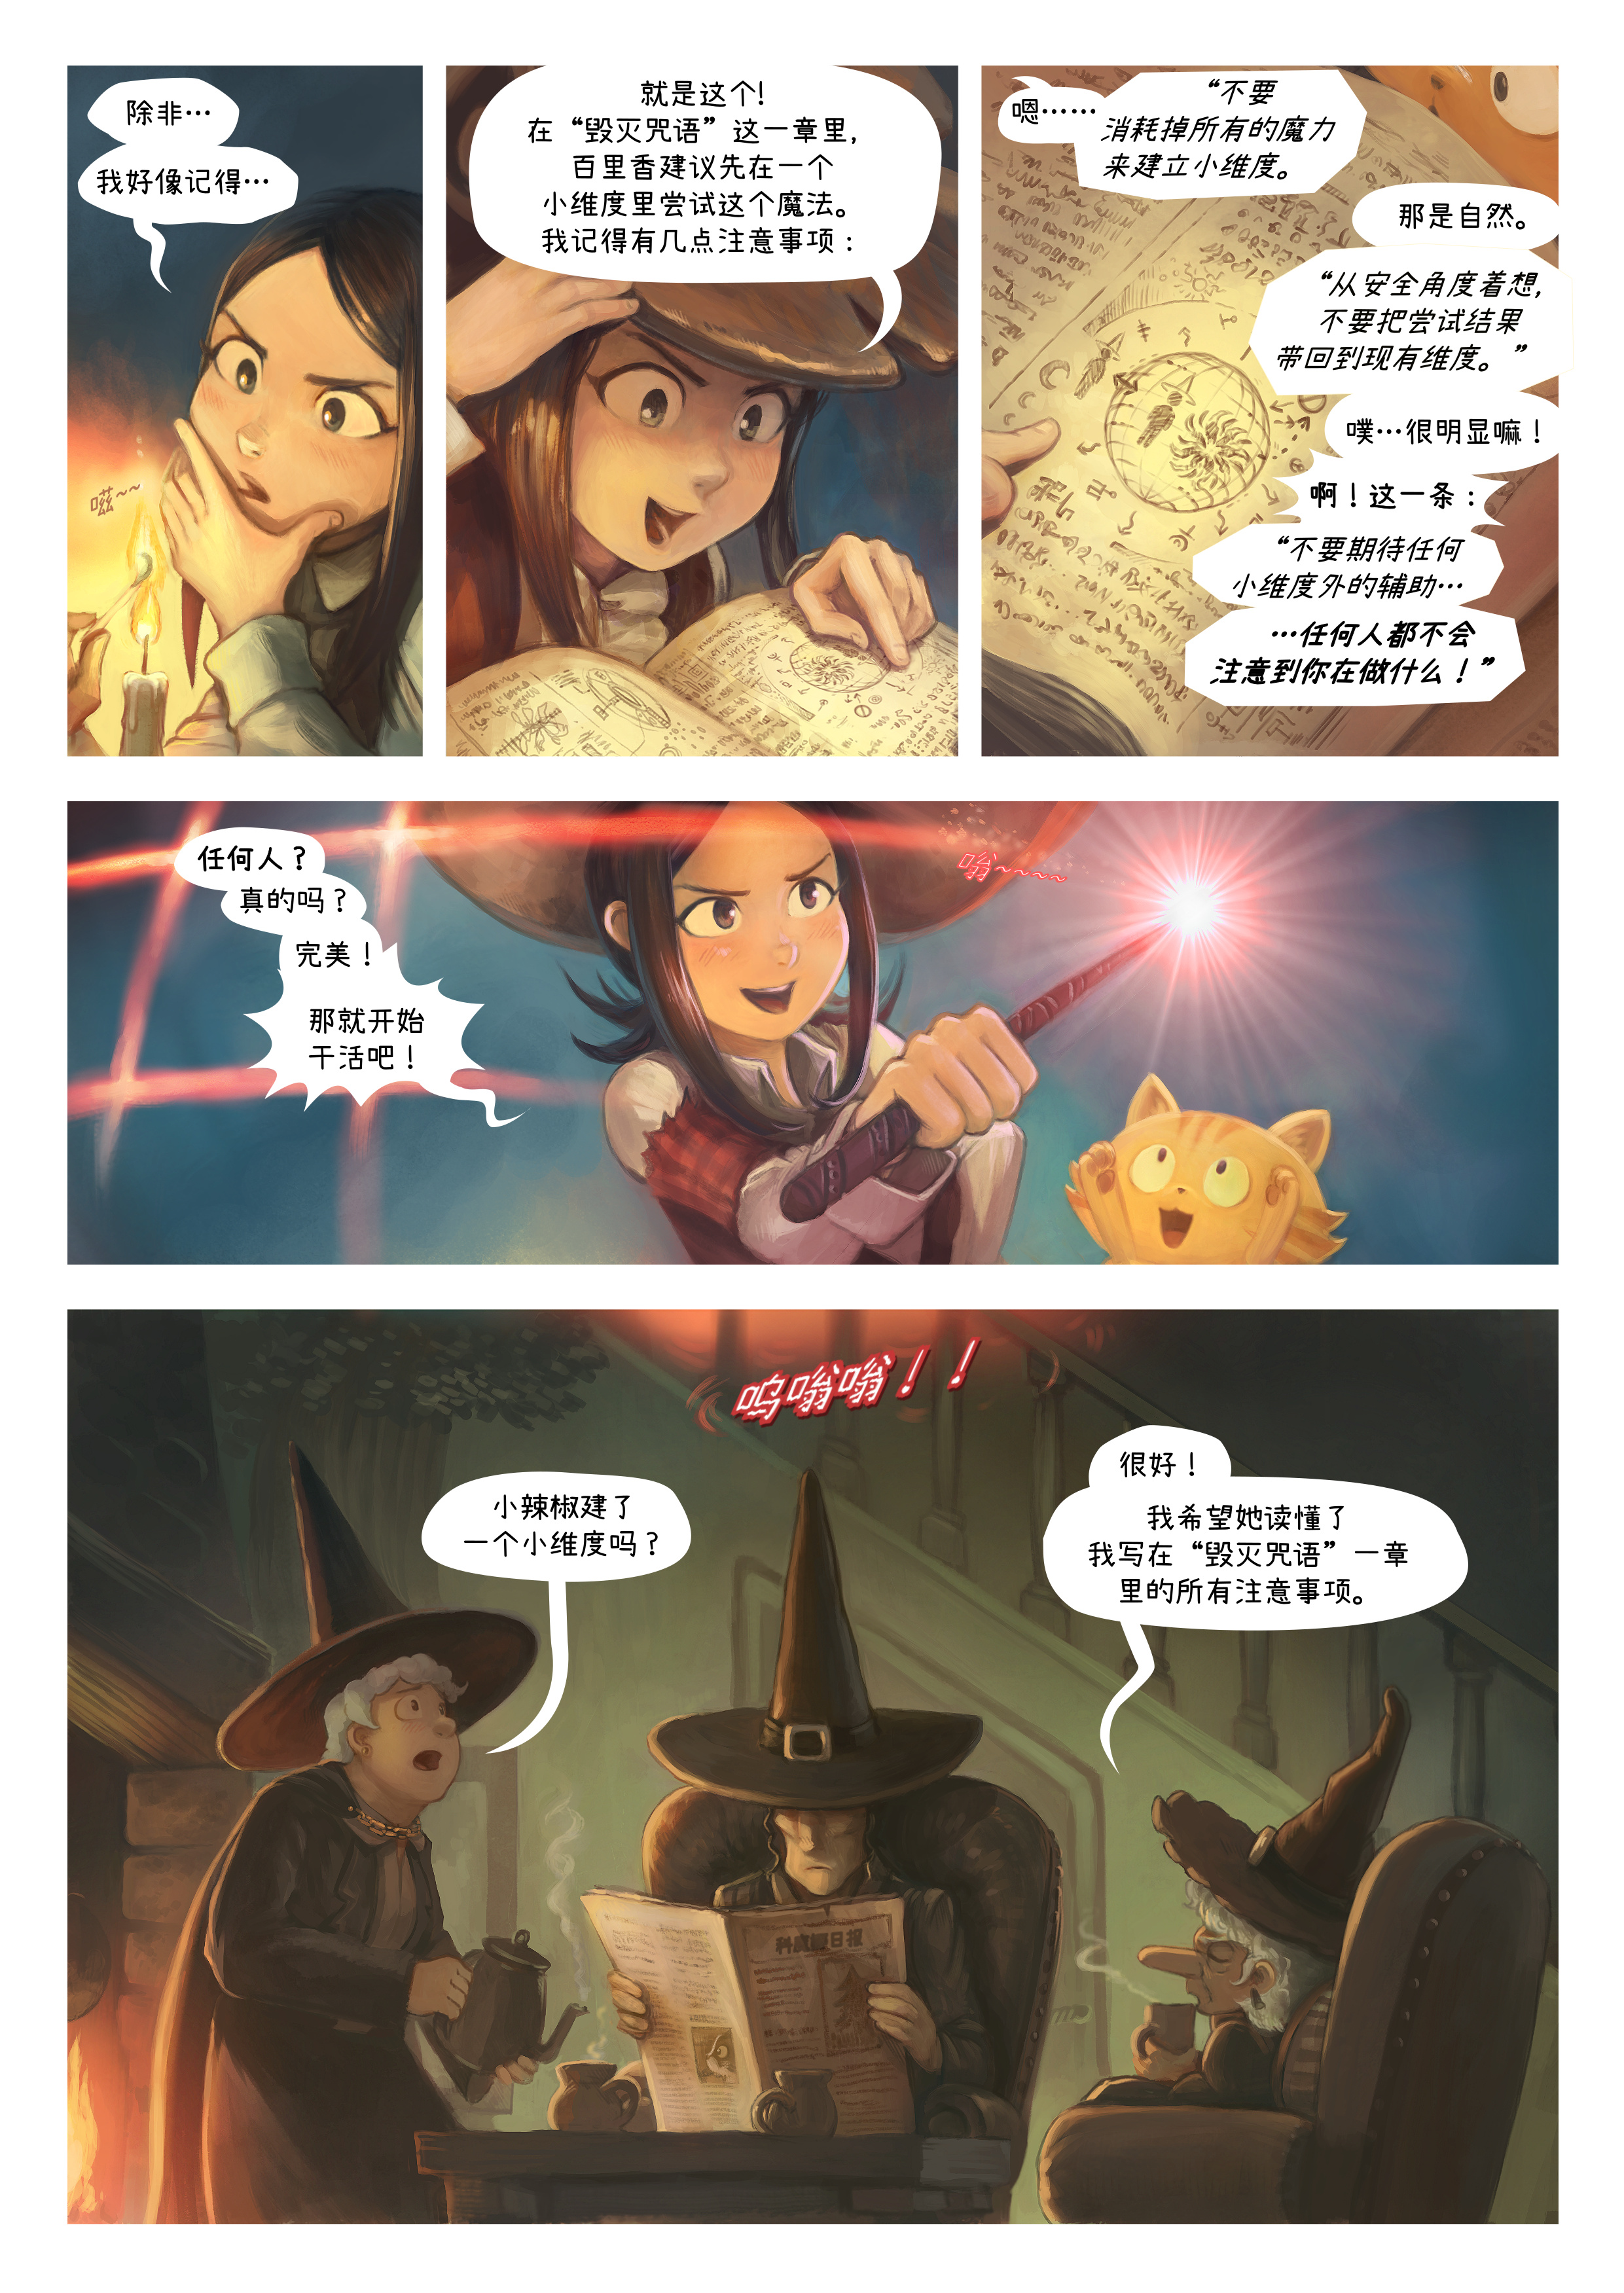 A webcomic page of Pepper&Carrot, 漫画全集 24 [cn], 页面 3